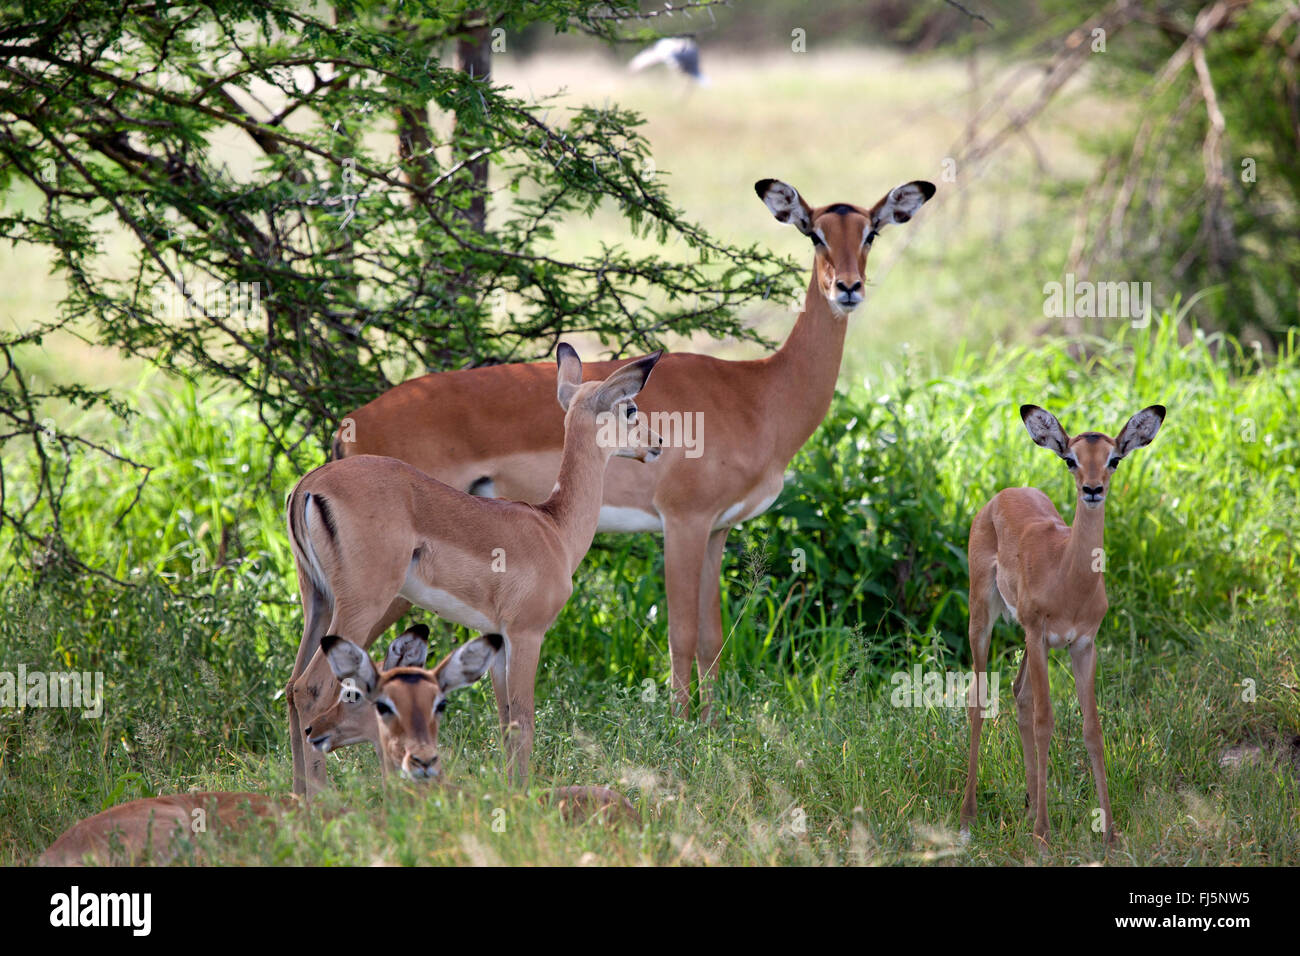 impala (Aepyceros melampus), impalas with young animals resting in the shadow of a bush, Tanzania - Stock Image